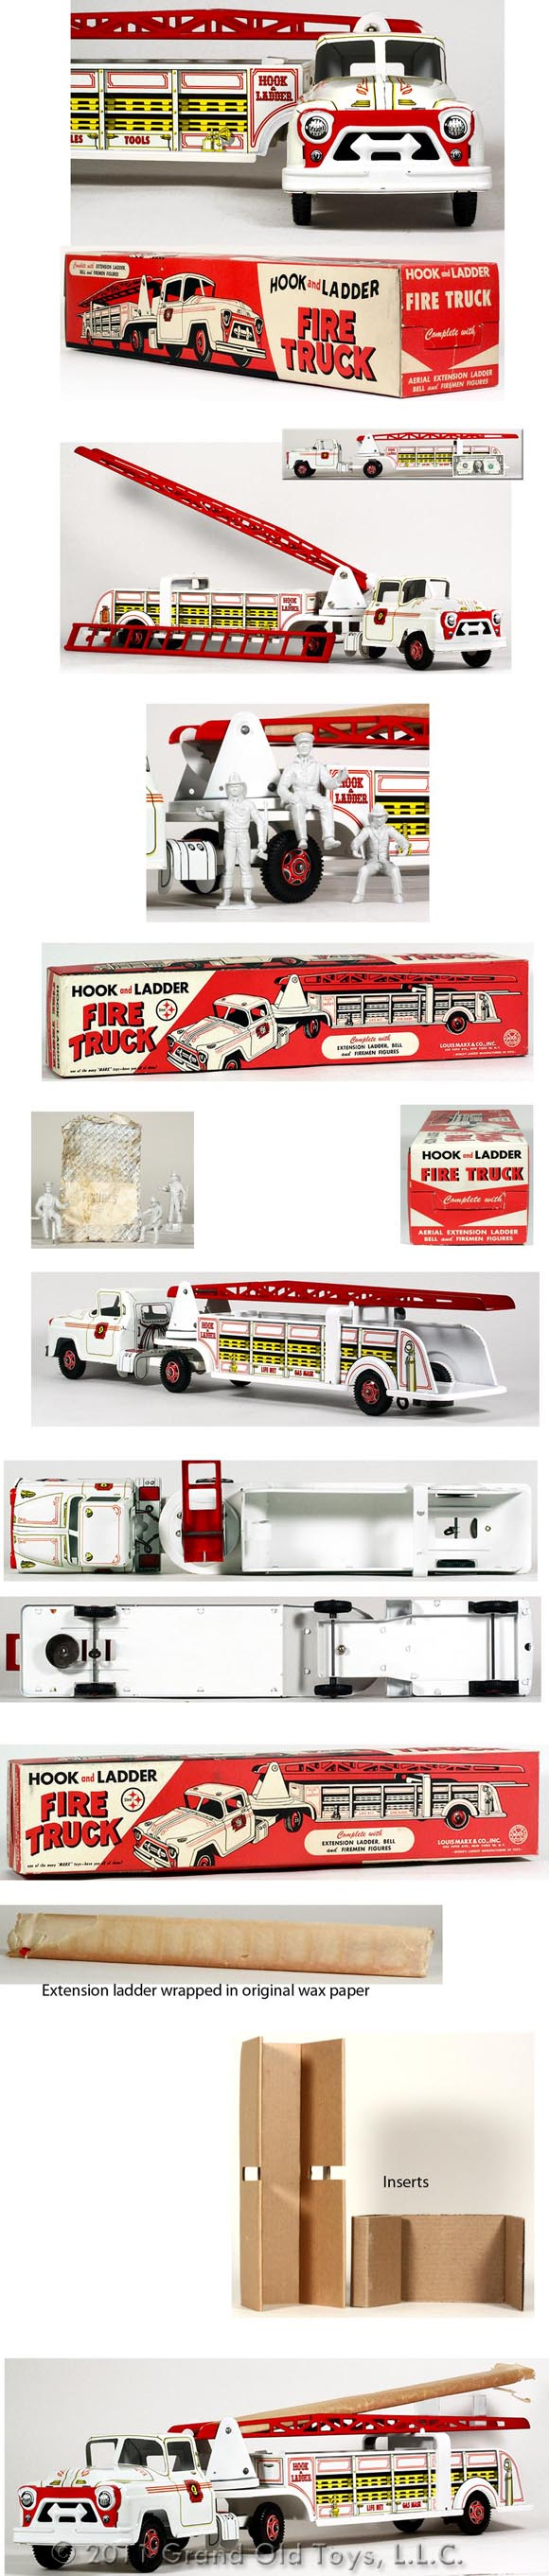 1959 Marx White Hook Ladder Fire Truck In Original Box